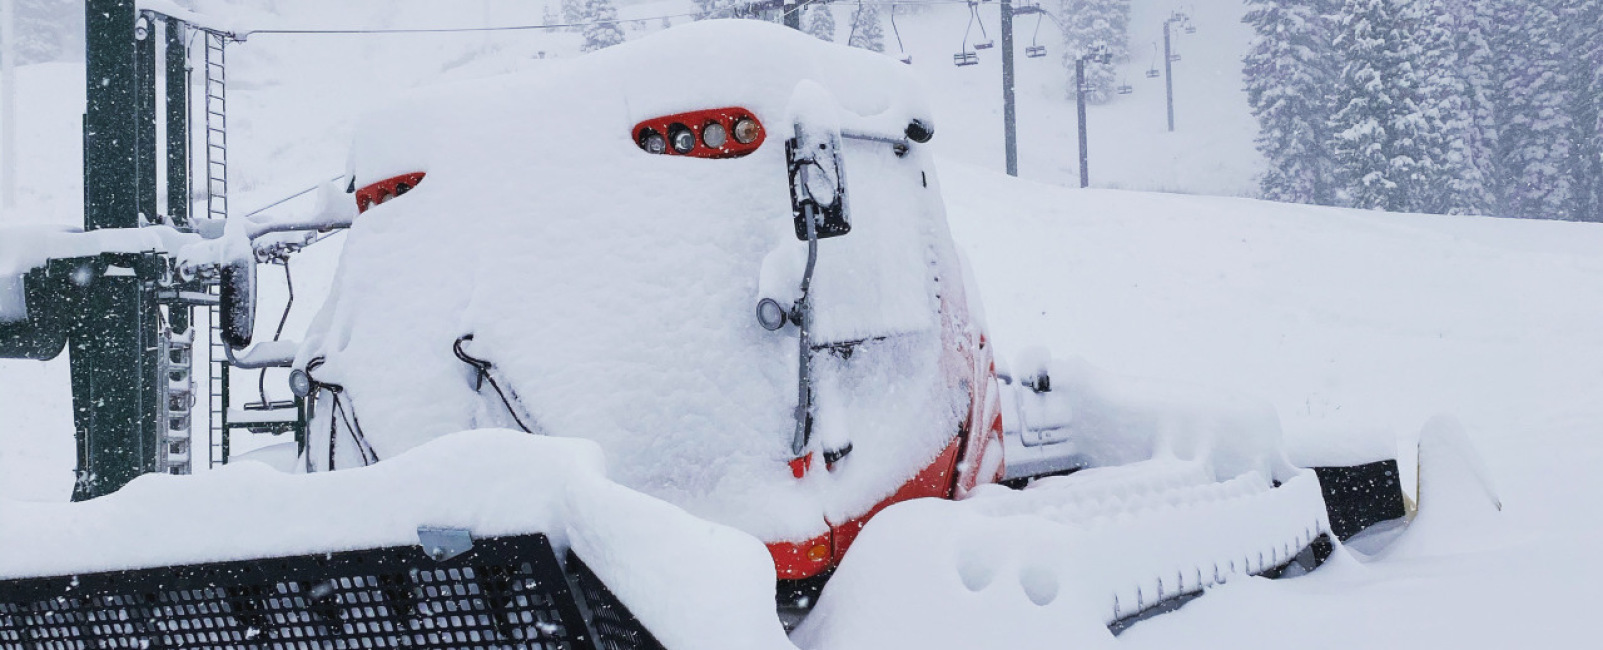 Utah's First Big Storm, With More On The Way